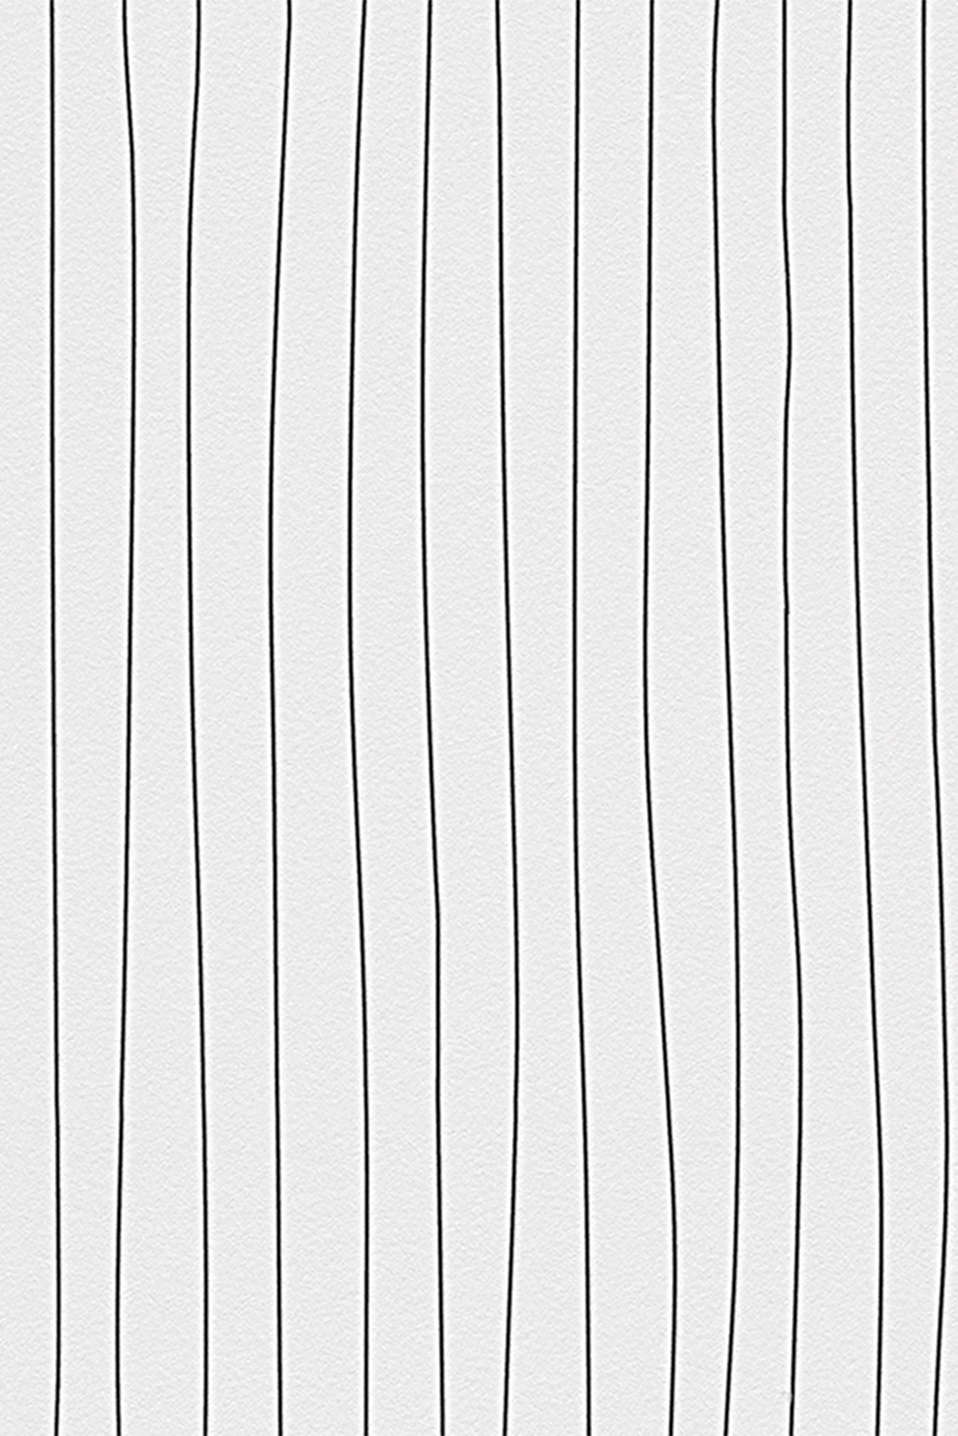 Esprit - Urban Spring Striped textile wallpaper